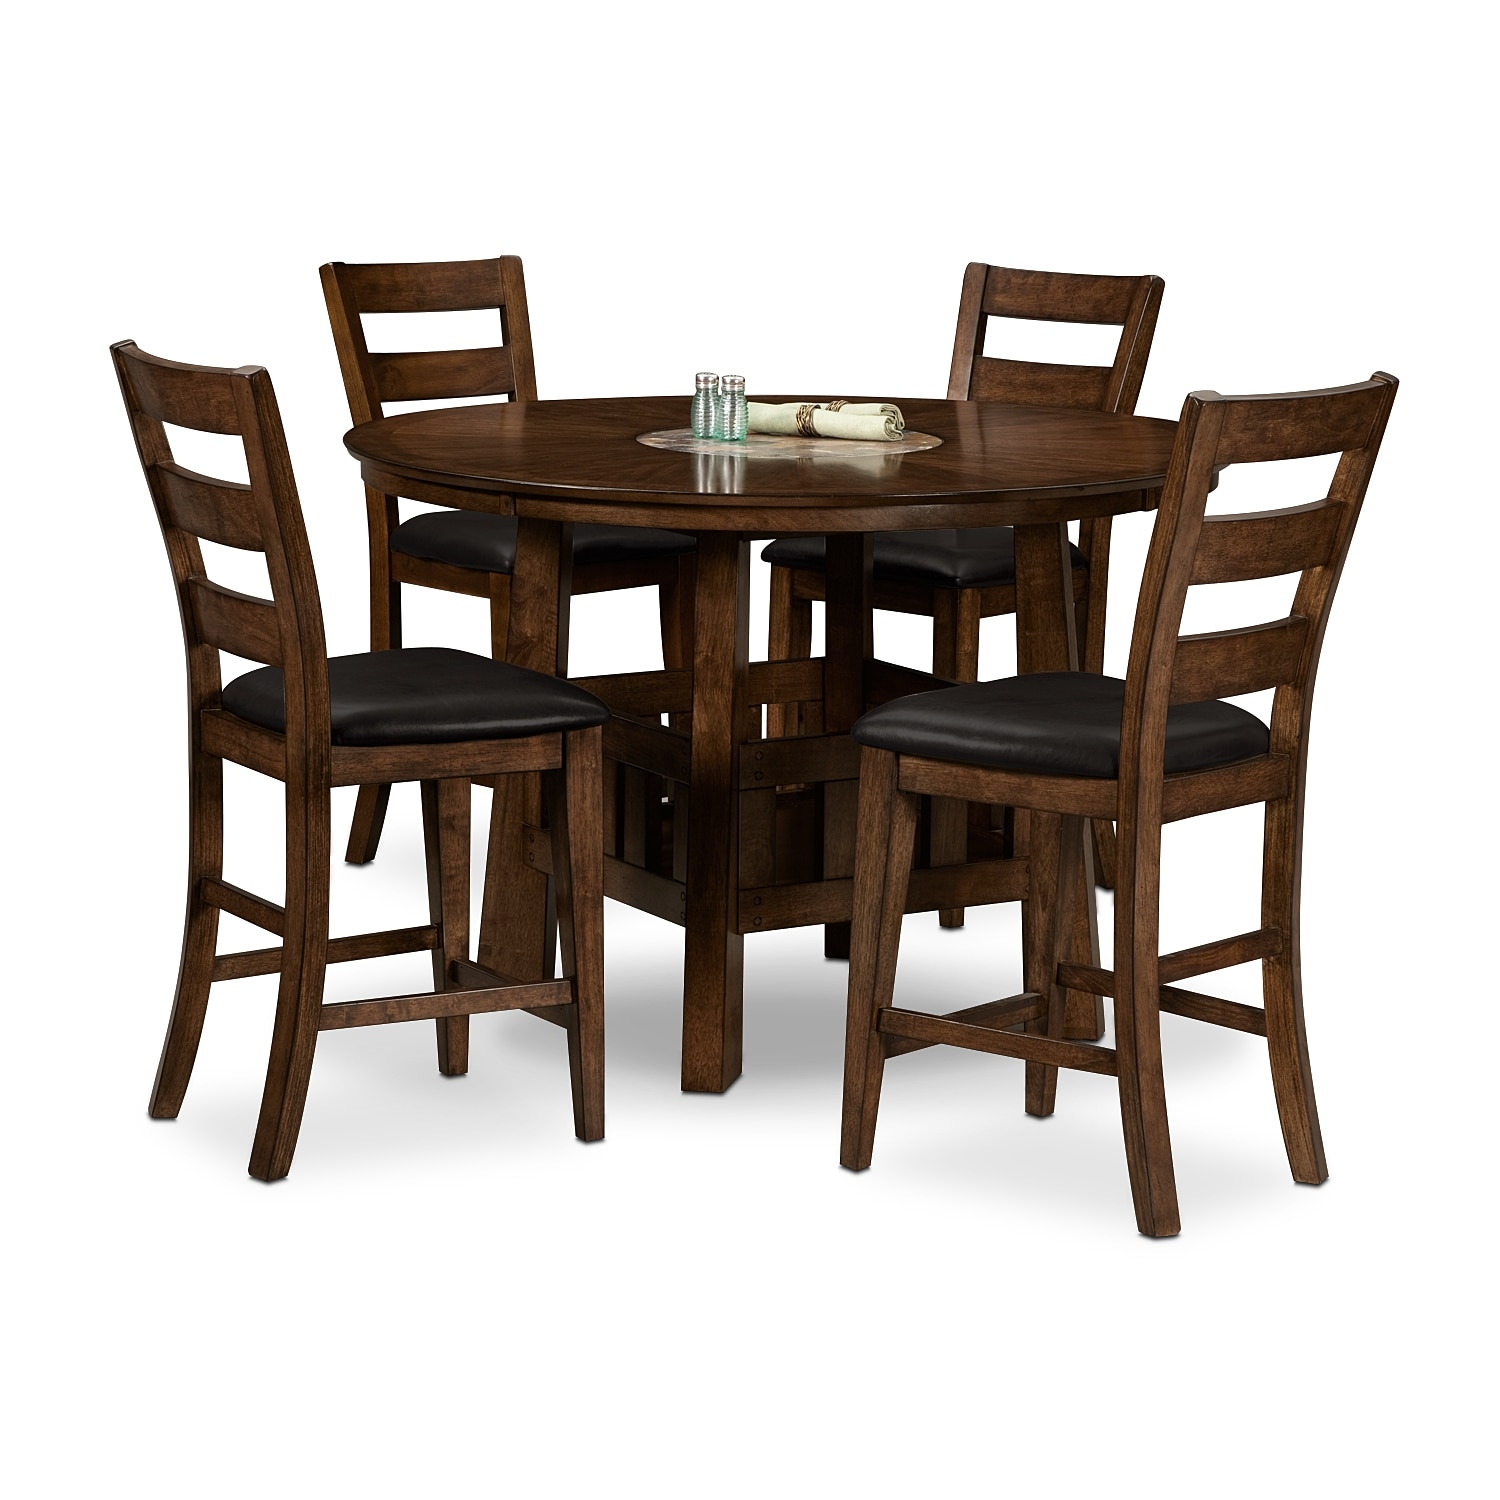 Dining room furniture american signature furniture for Signature furniture